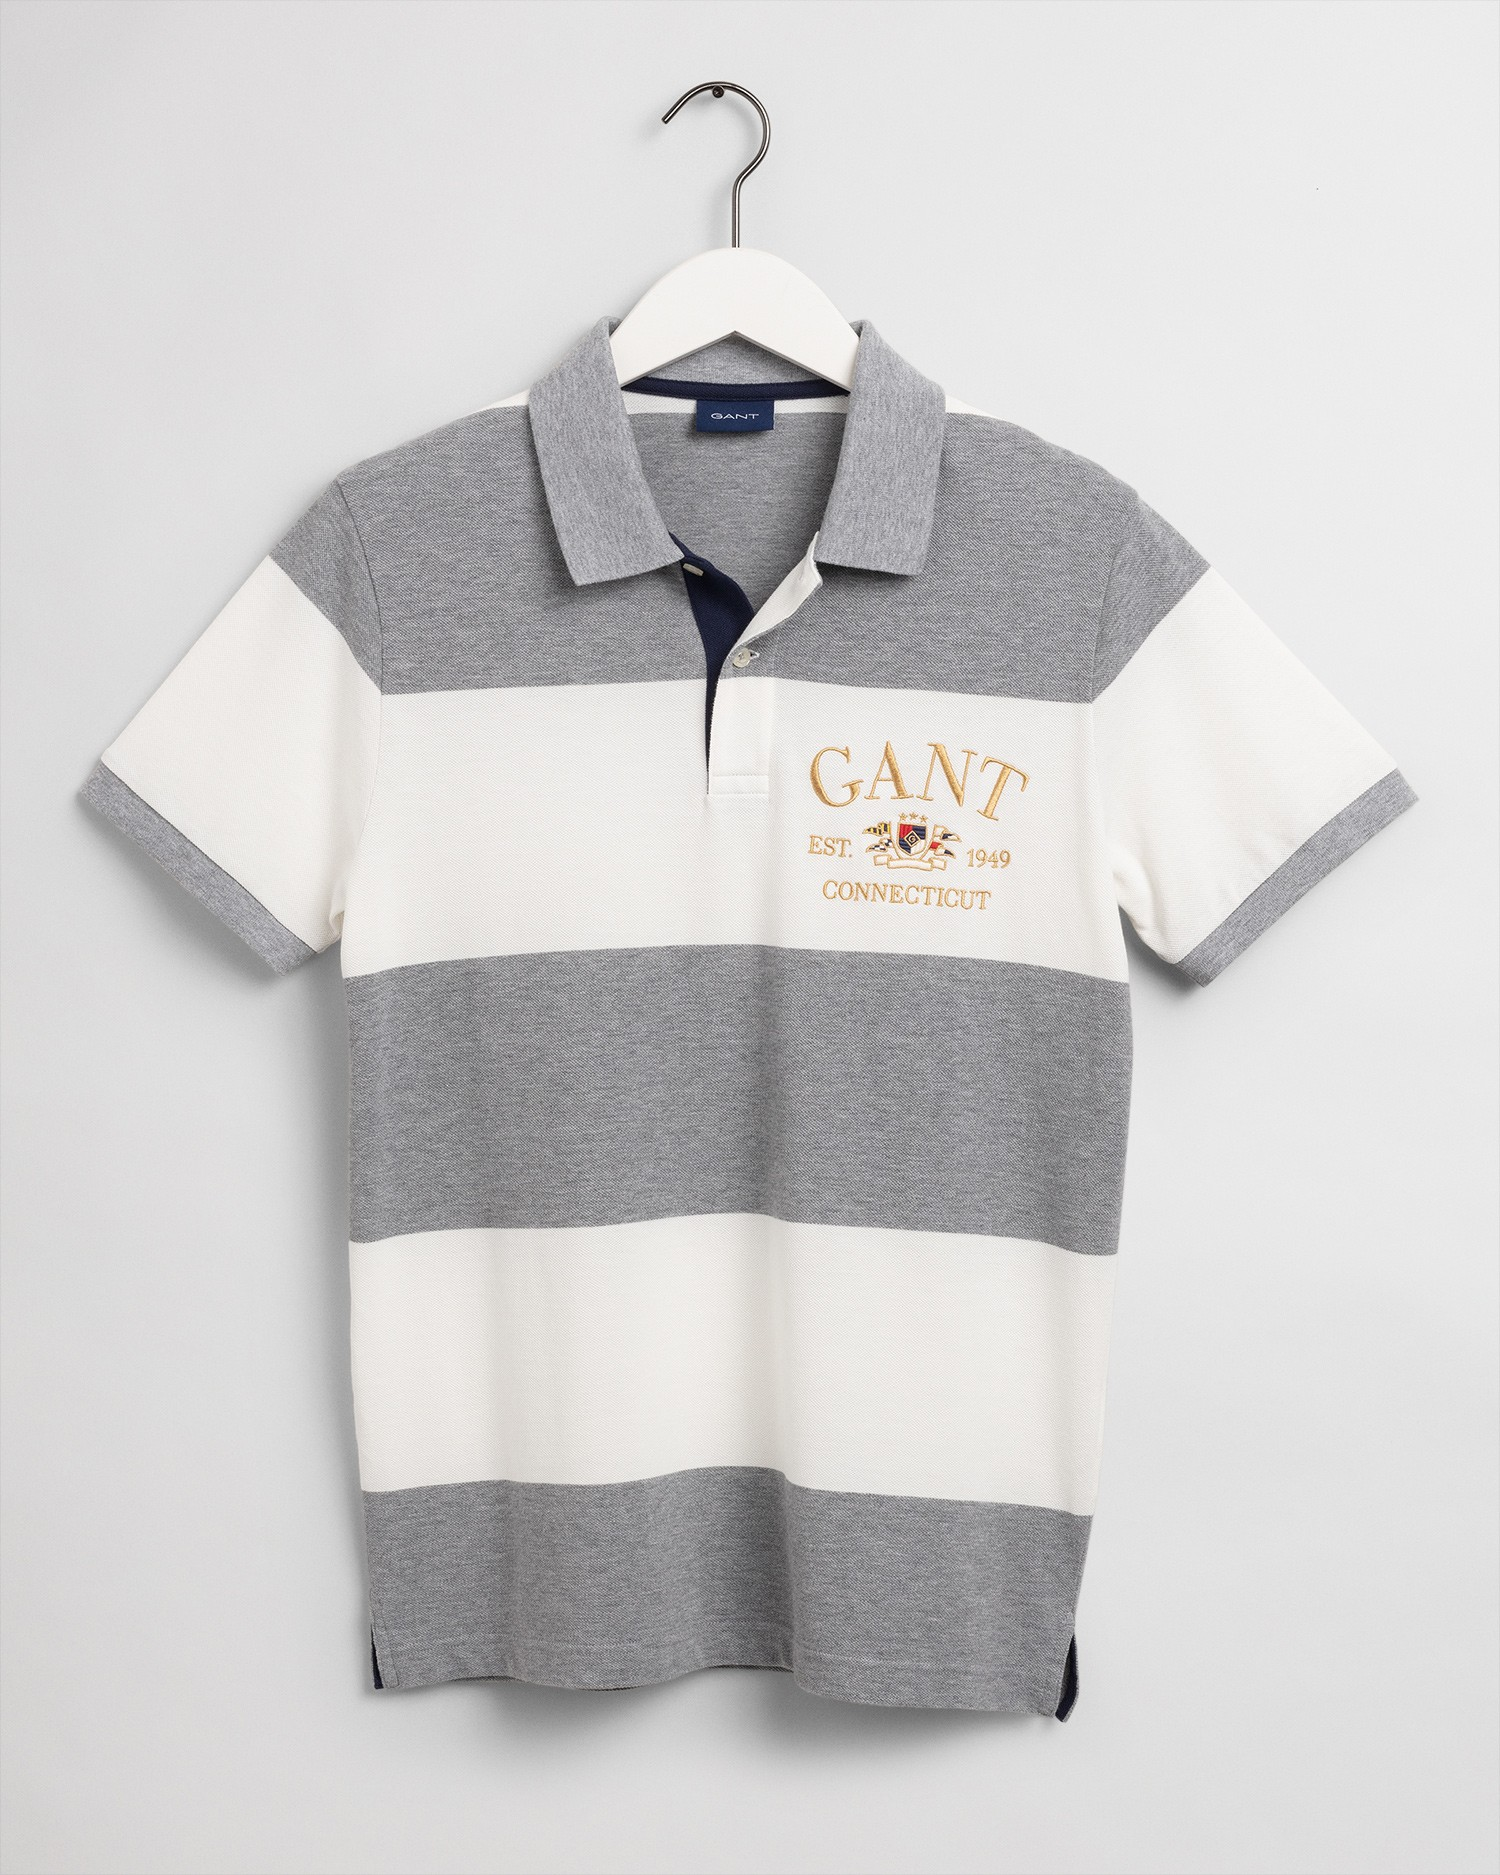 GANT Men's Flag Crest Barstripe Short Sleeve Pique Polo - 2022109